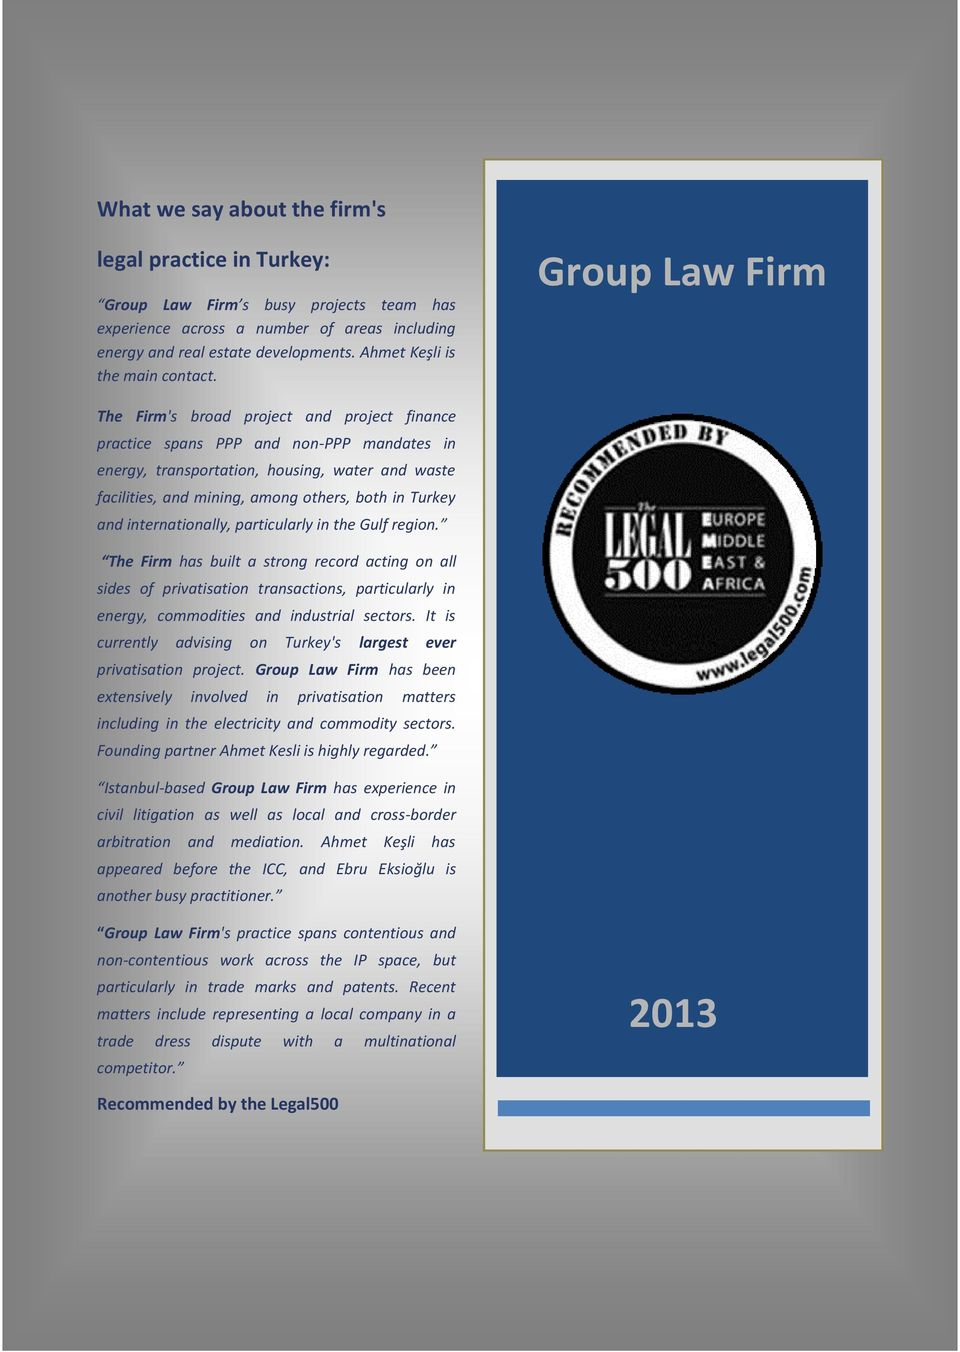 Group Law Firm The Firm's broad project and project finance practice spans PPP and non-ppp mandates in energy, transportation, housing, water and waste facilities, and mining, among others, both in